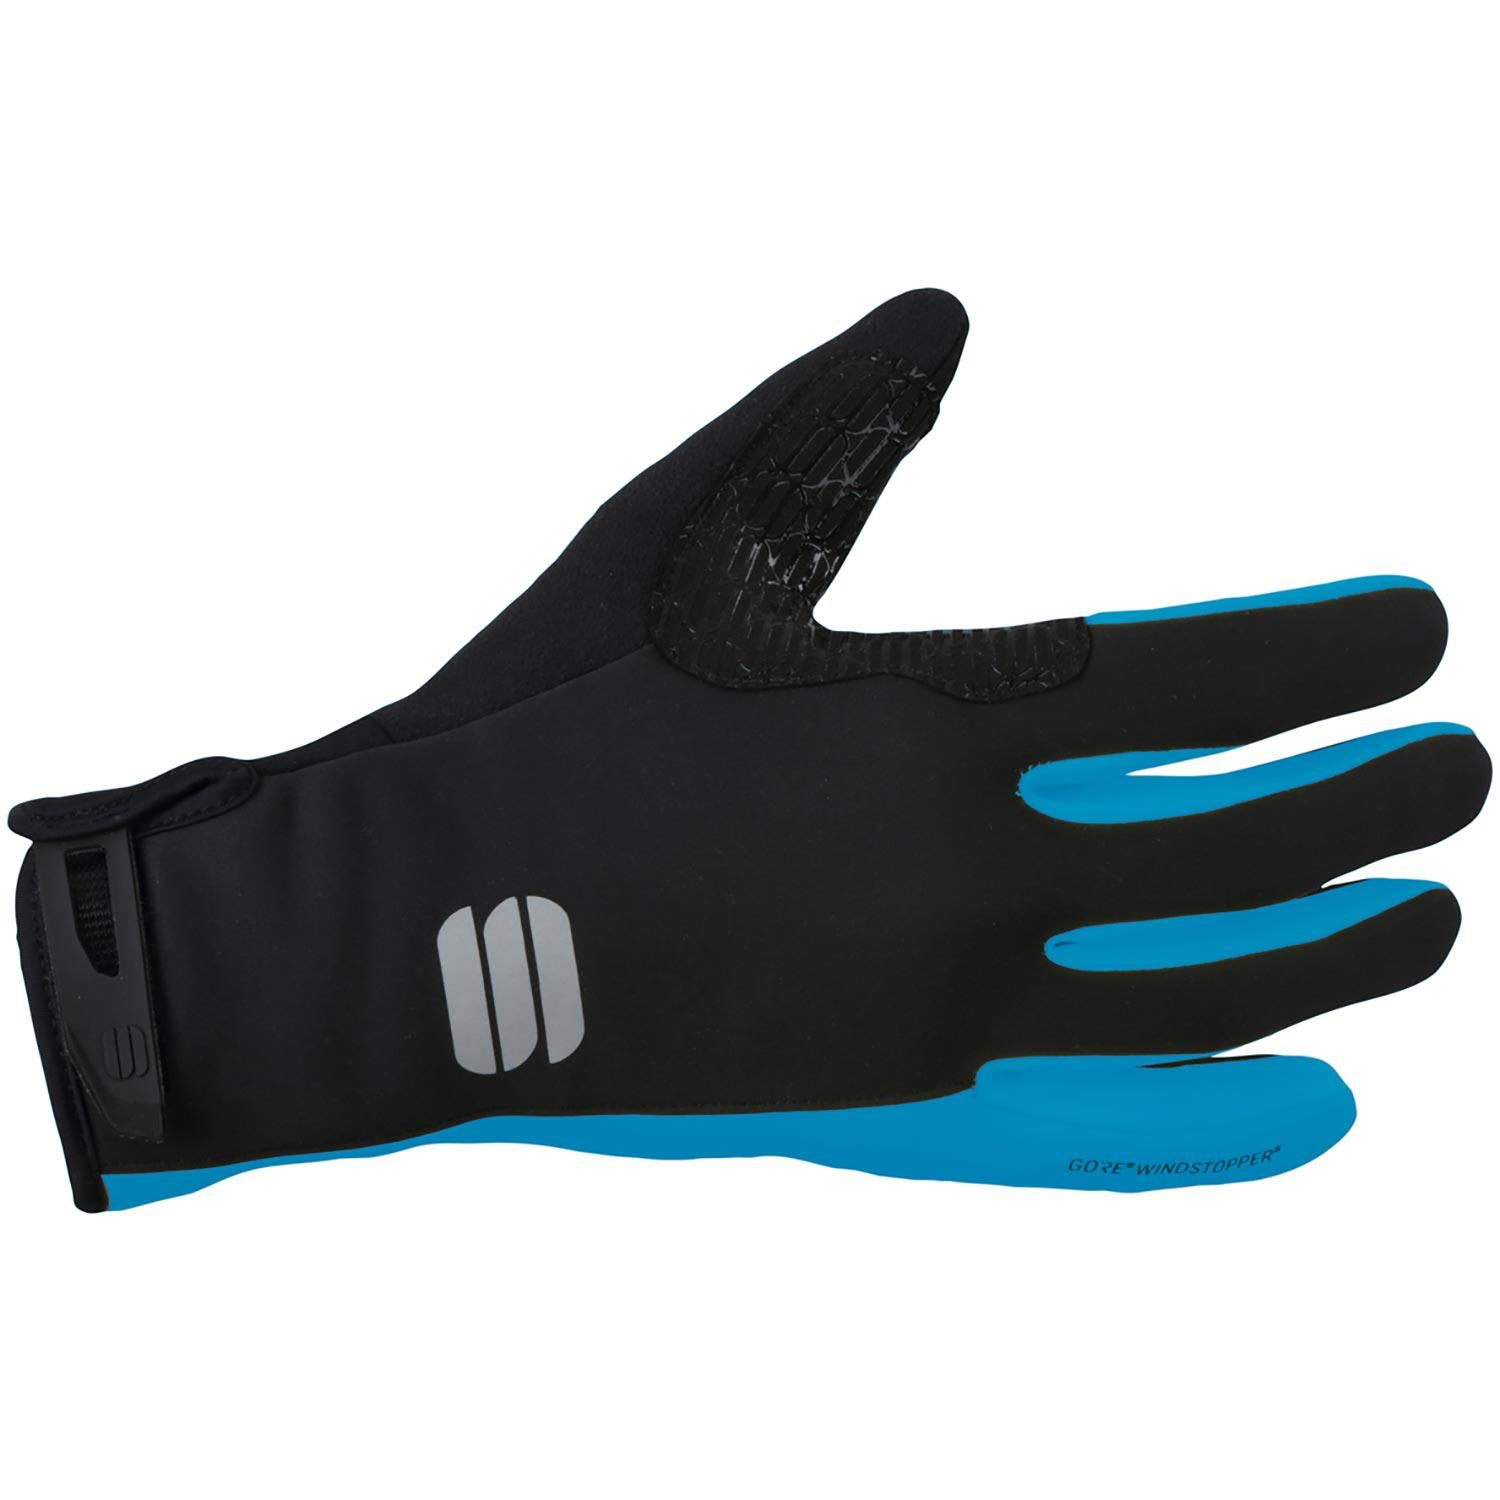 Sportful-Sportful WS Essential 2 Gloves-Black/Blue Atomic-XS-SF019683981-saddleback-elite-performance-cycling